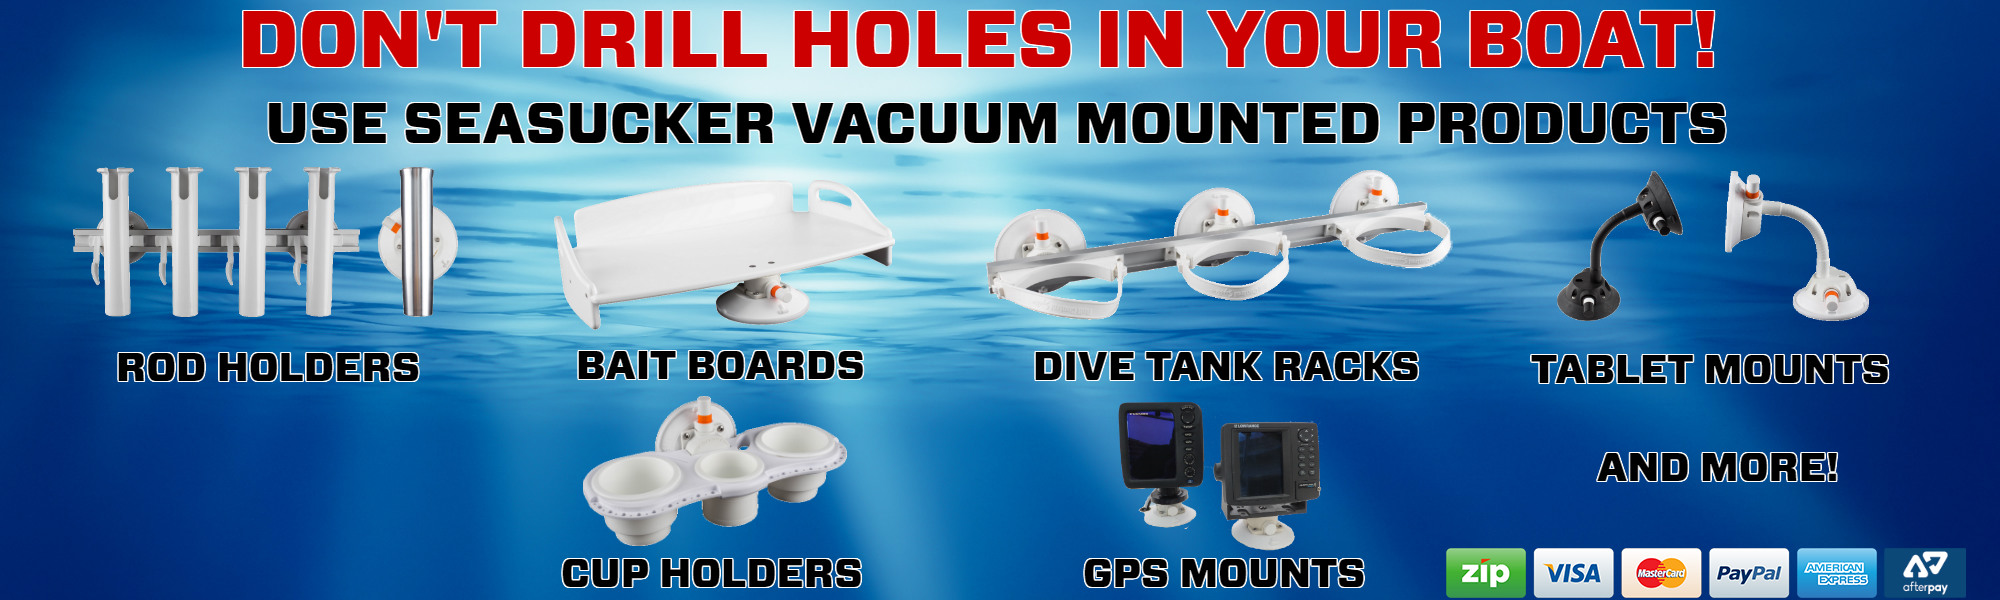 SeaSucker Marine Products Banner